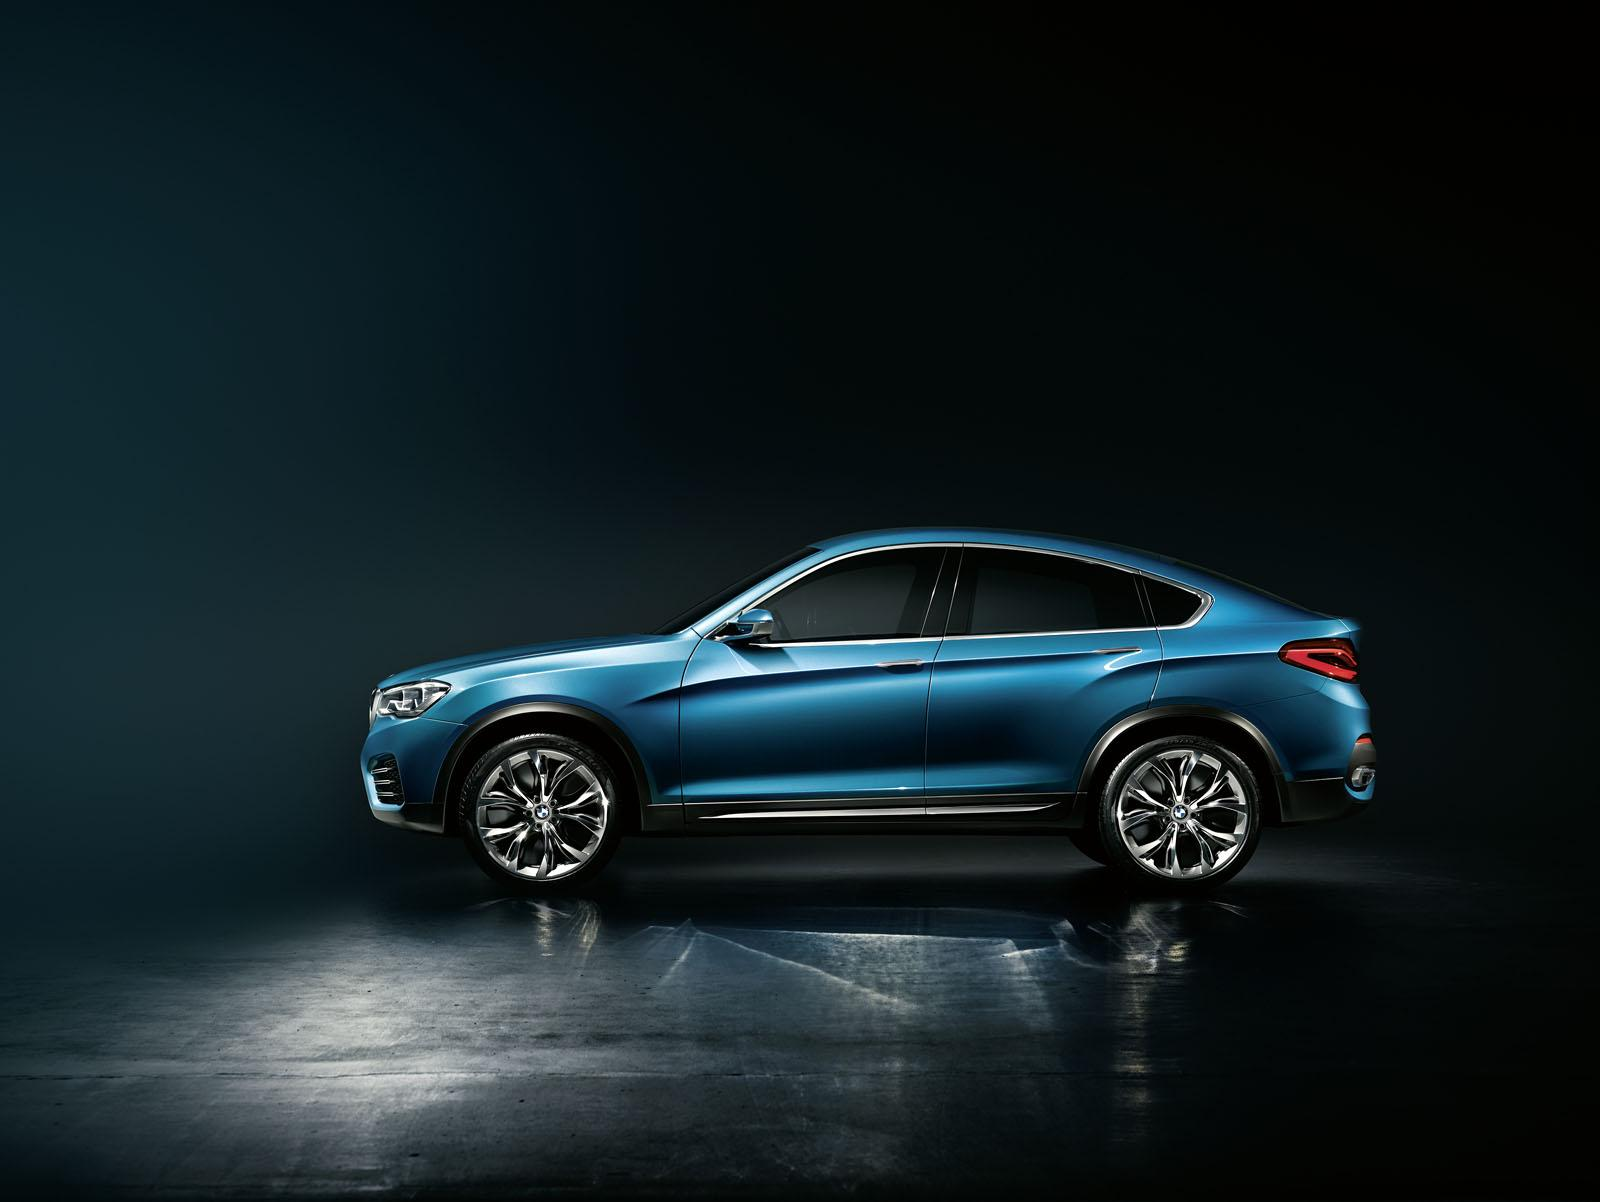 2014 BMW X4 Concept official 4